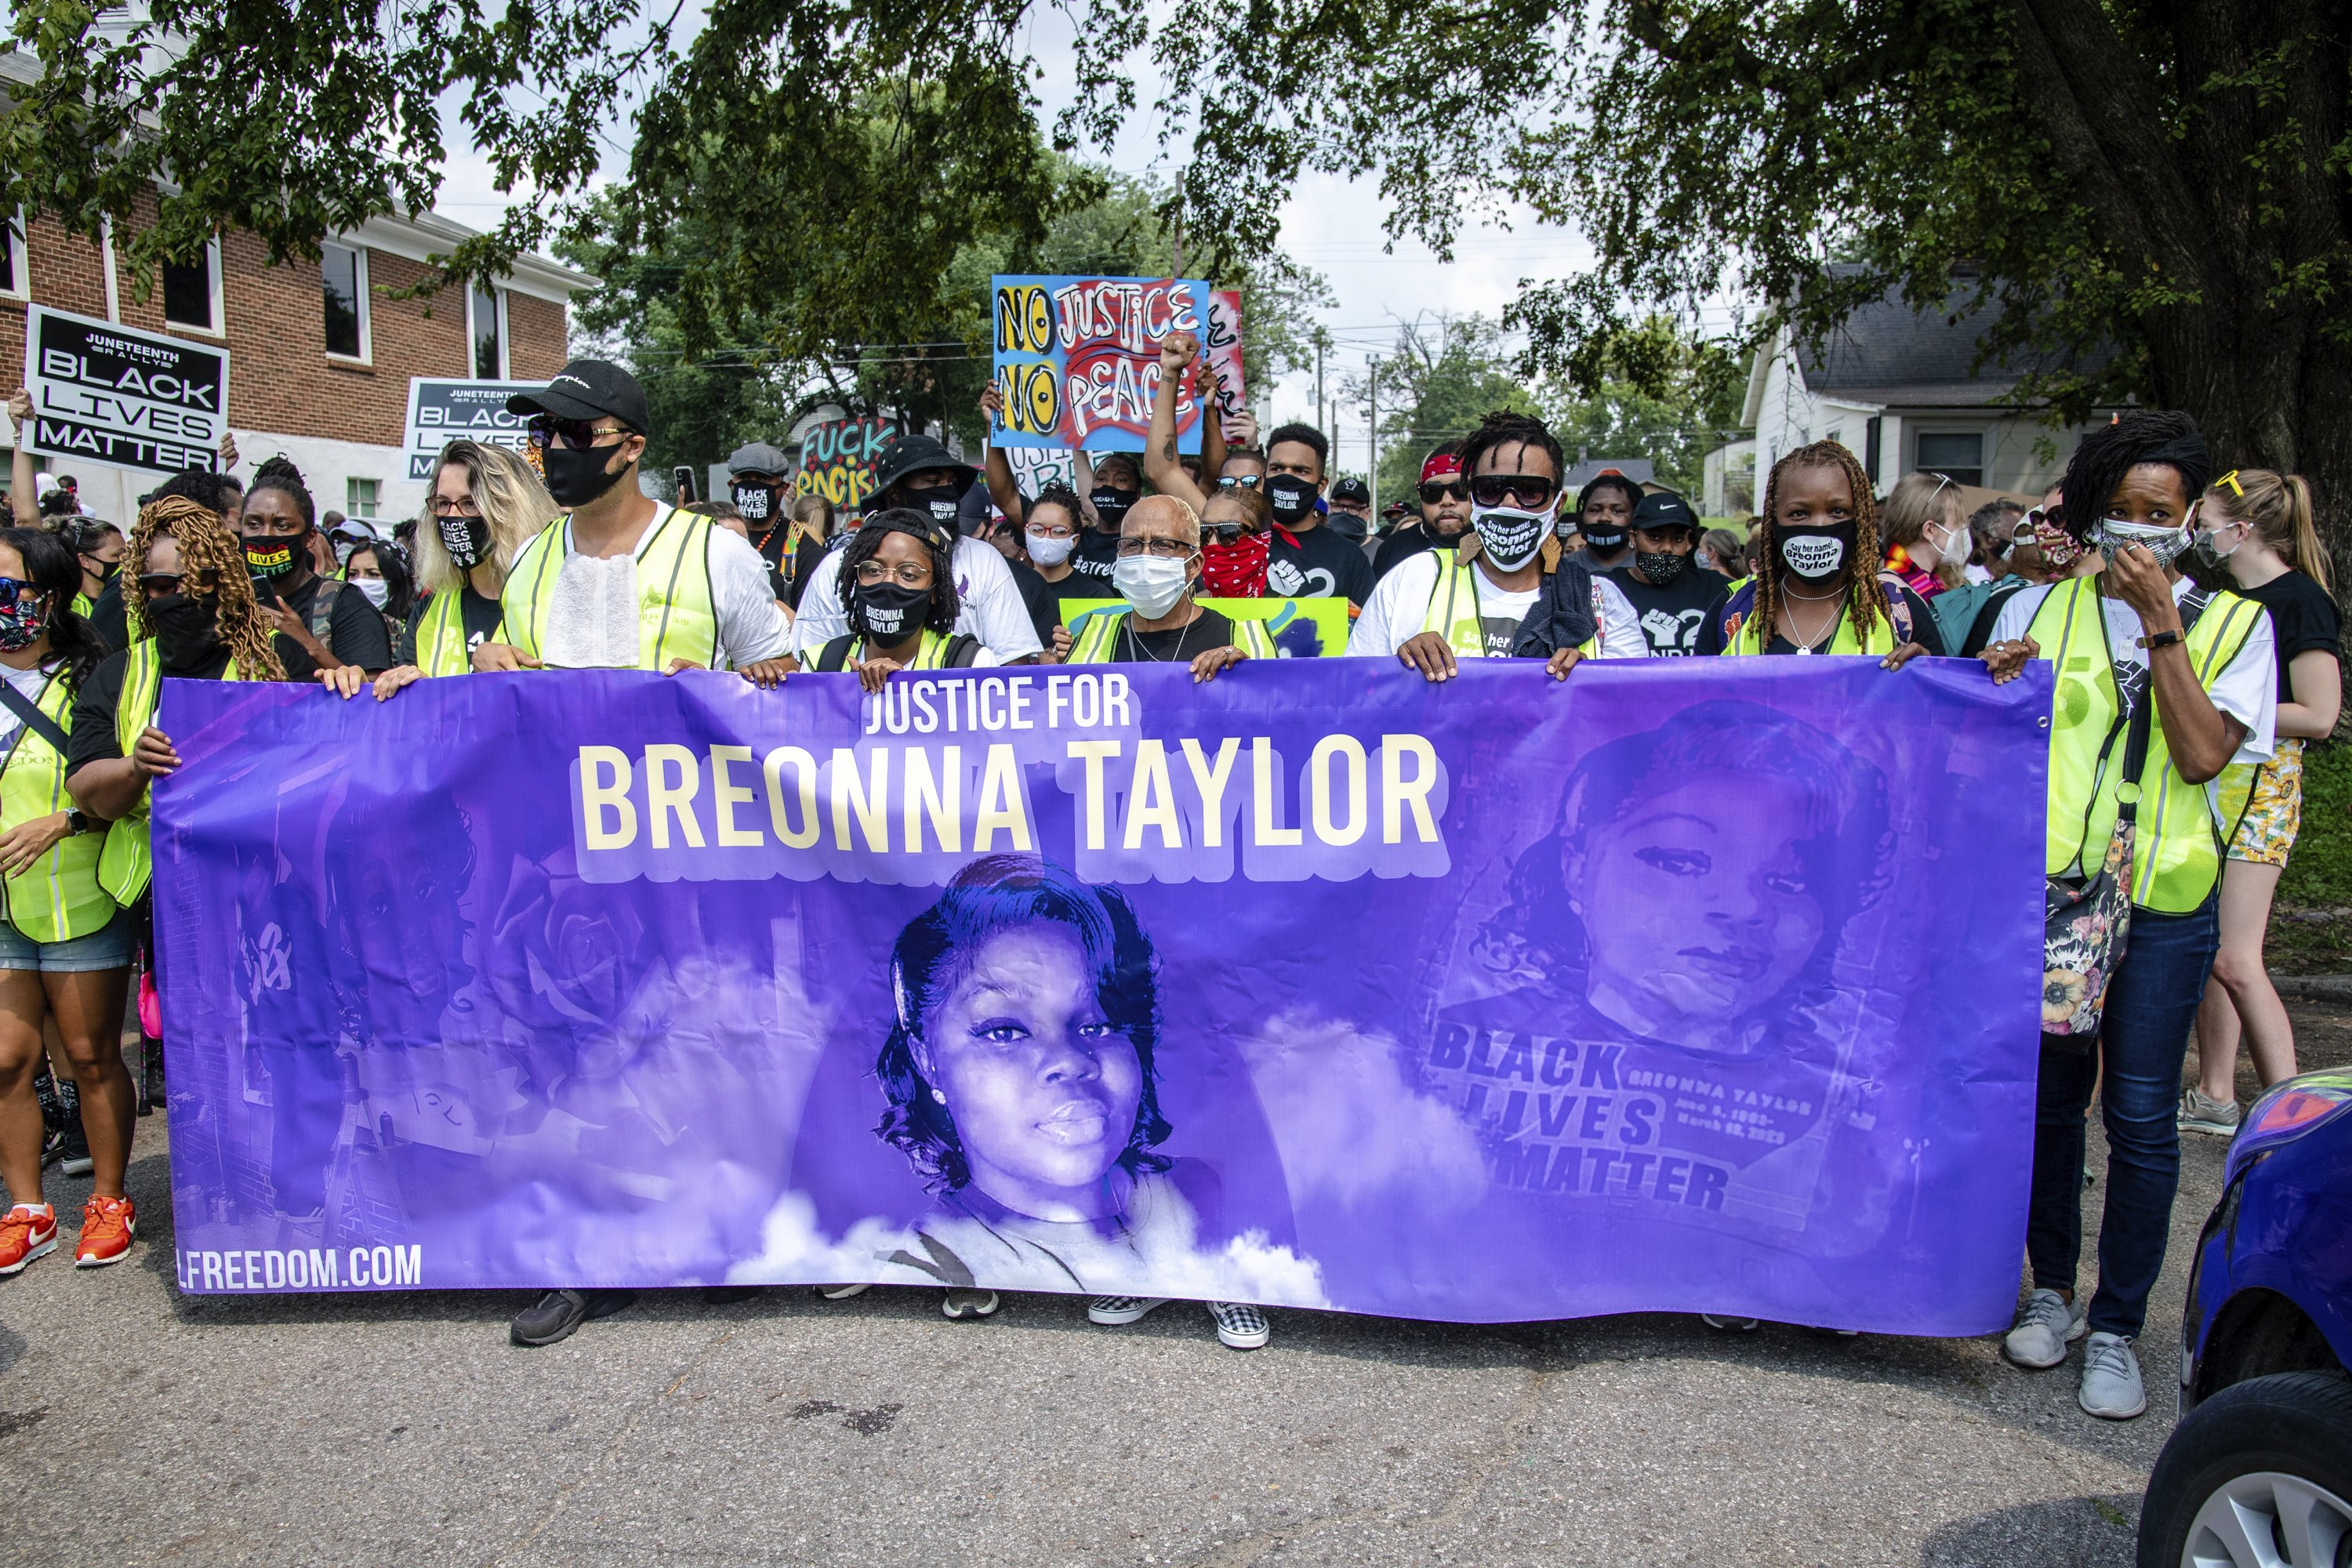 A Timeline Of Events Related To The Death Of Breonna Taylor